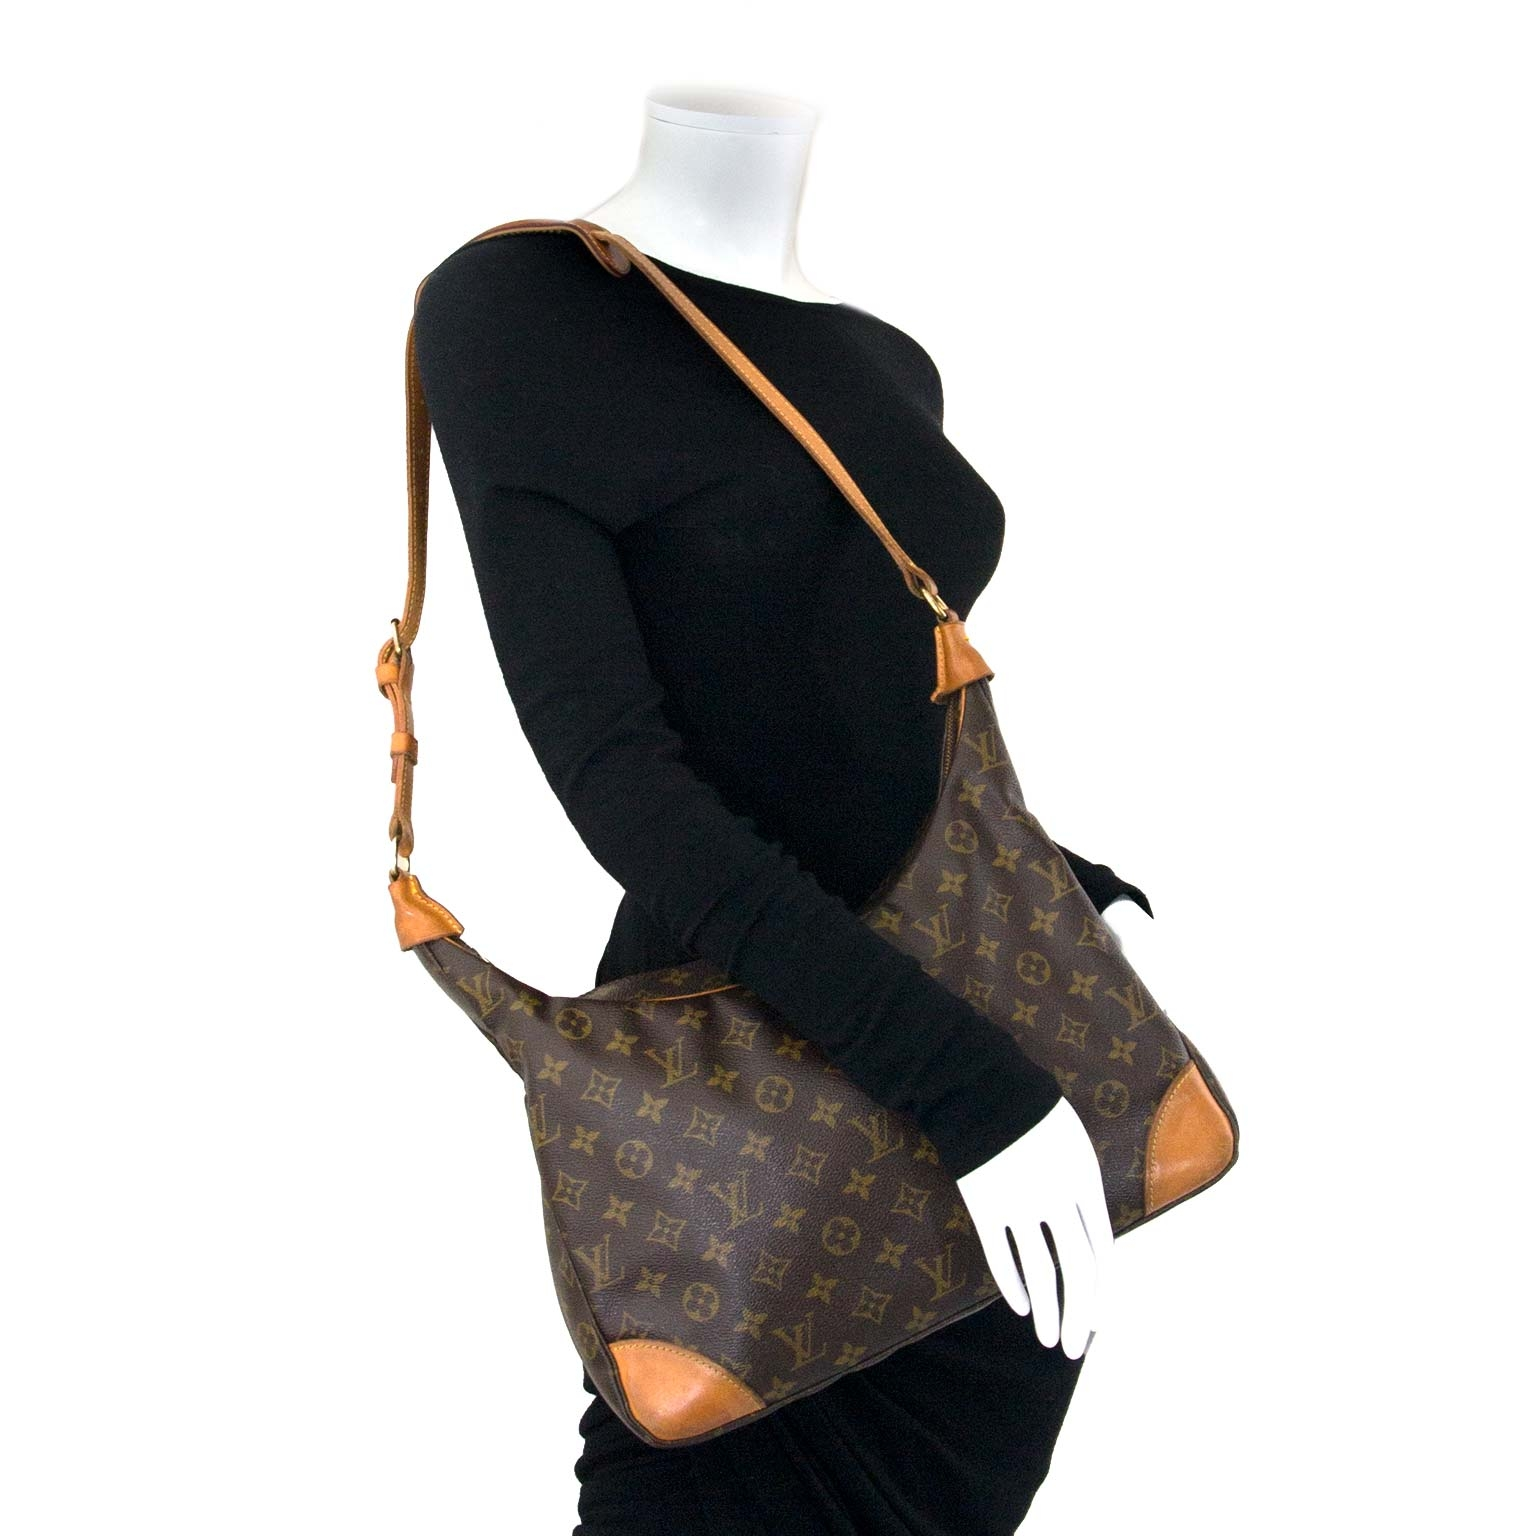 louis vuitton boulogne 35 monogram shoulder bag now for sale at labellov vintage fashion webshop belgium